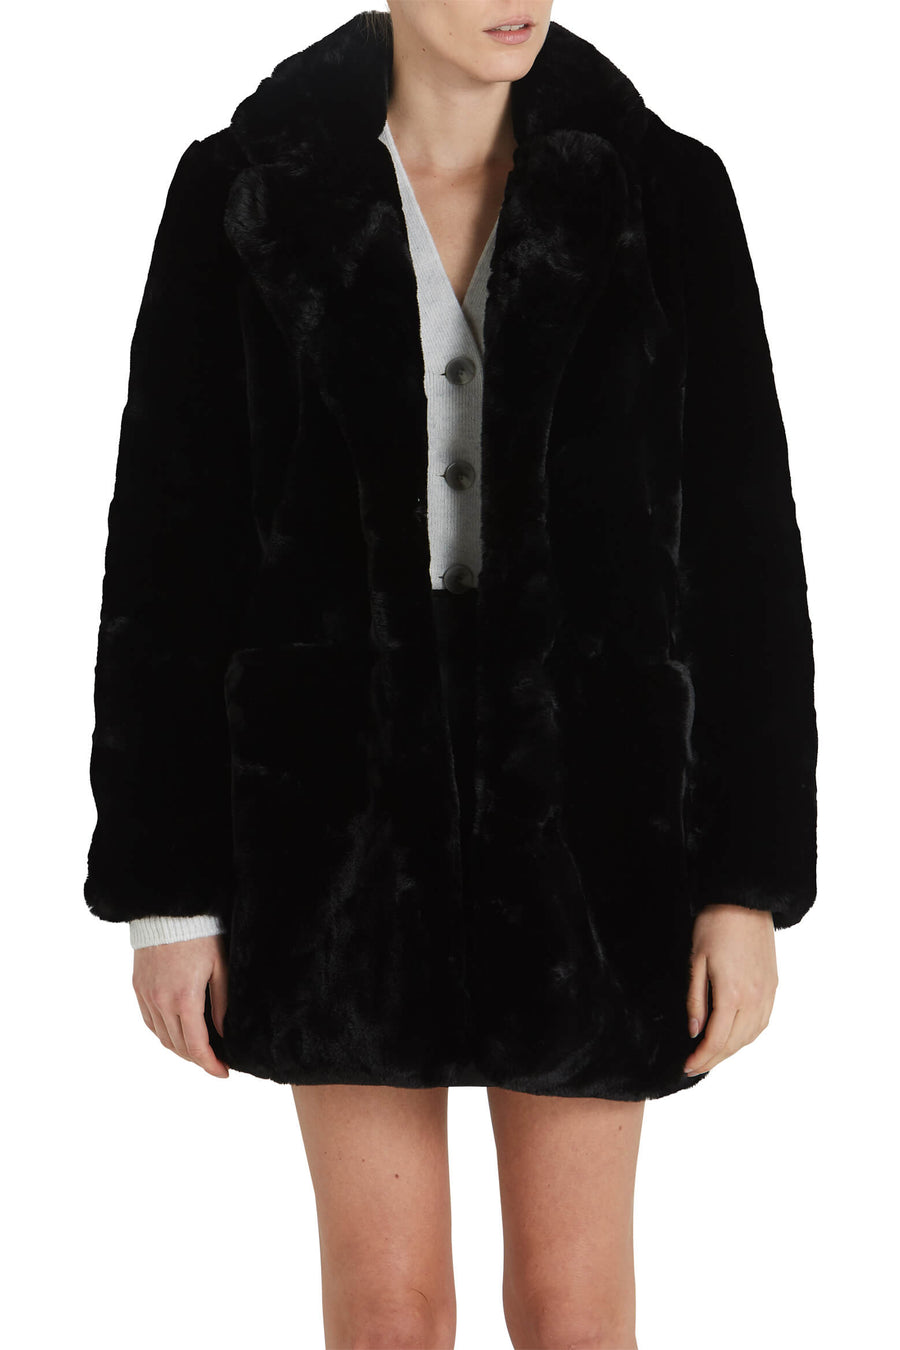 Apparis Sophie Coat in Black from The New Trend